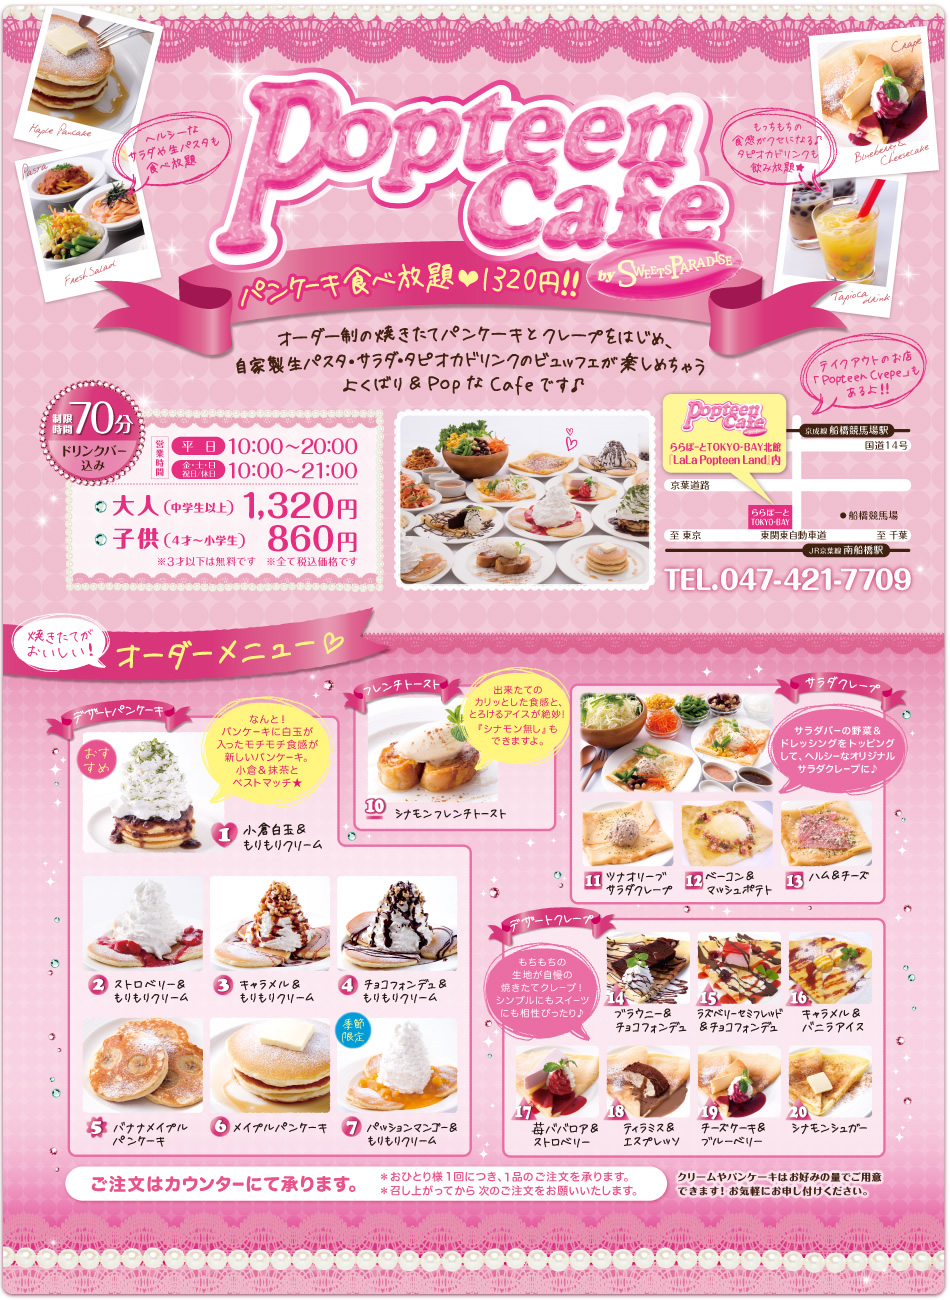 popteen cafe(ポップティーンカフェ 南船橋)